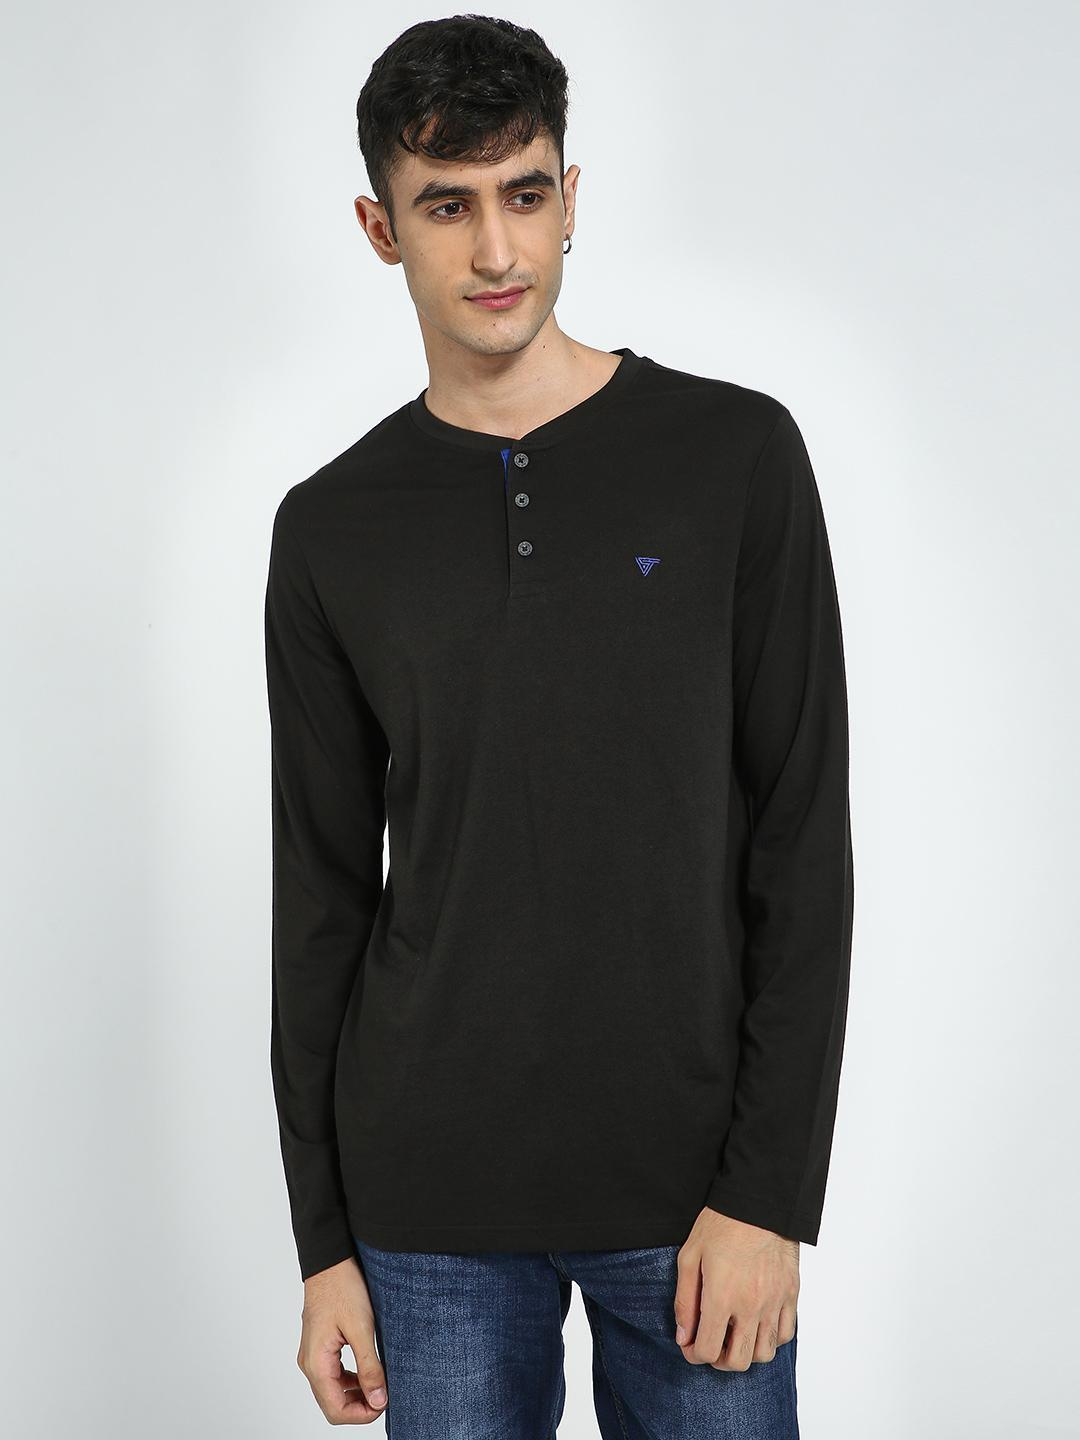 Blue Saint Black Long Sleeve Henley Neck T-Shirt 1